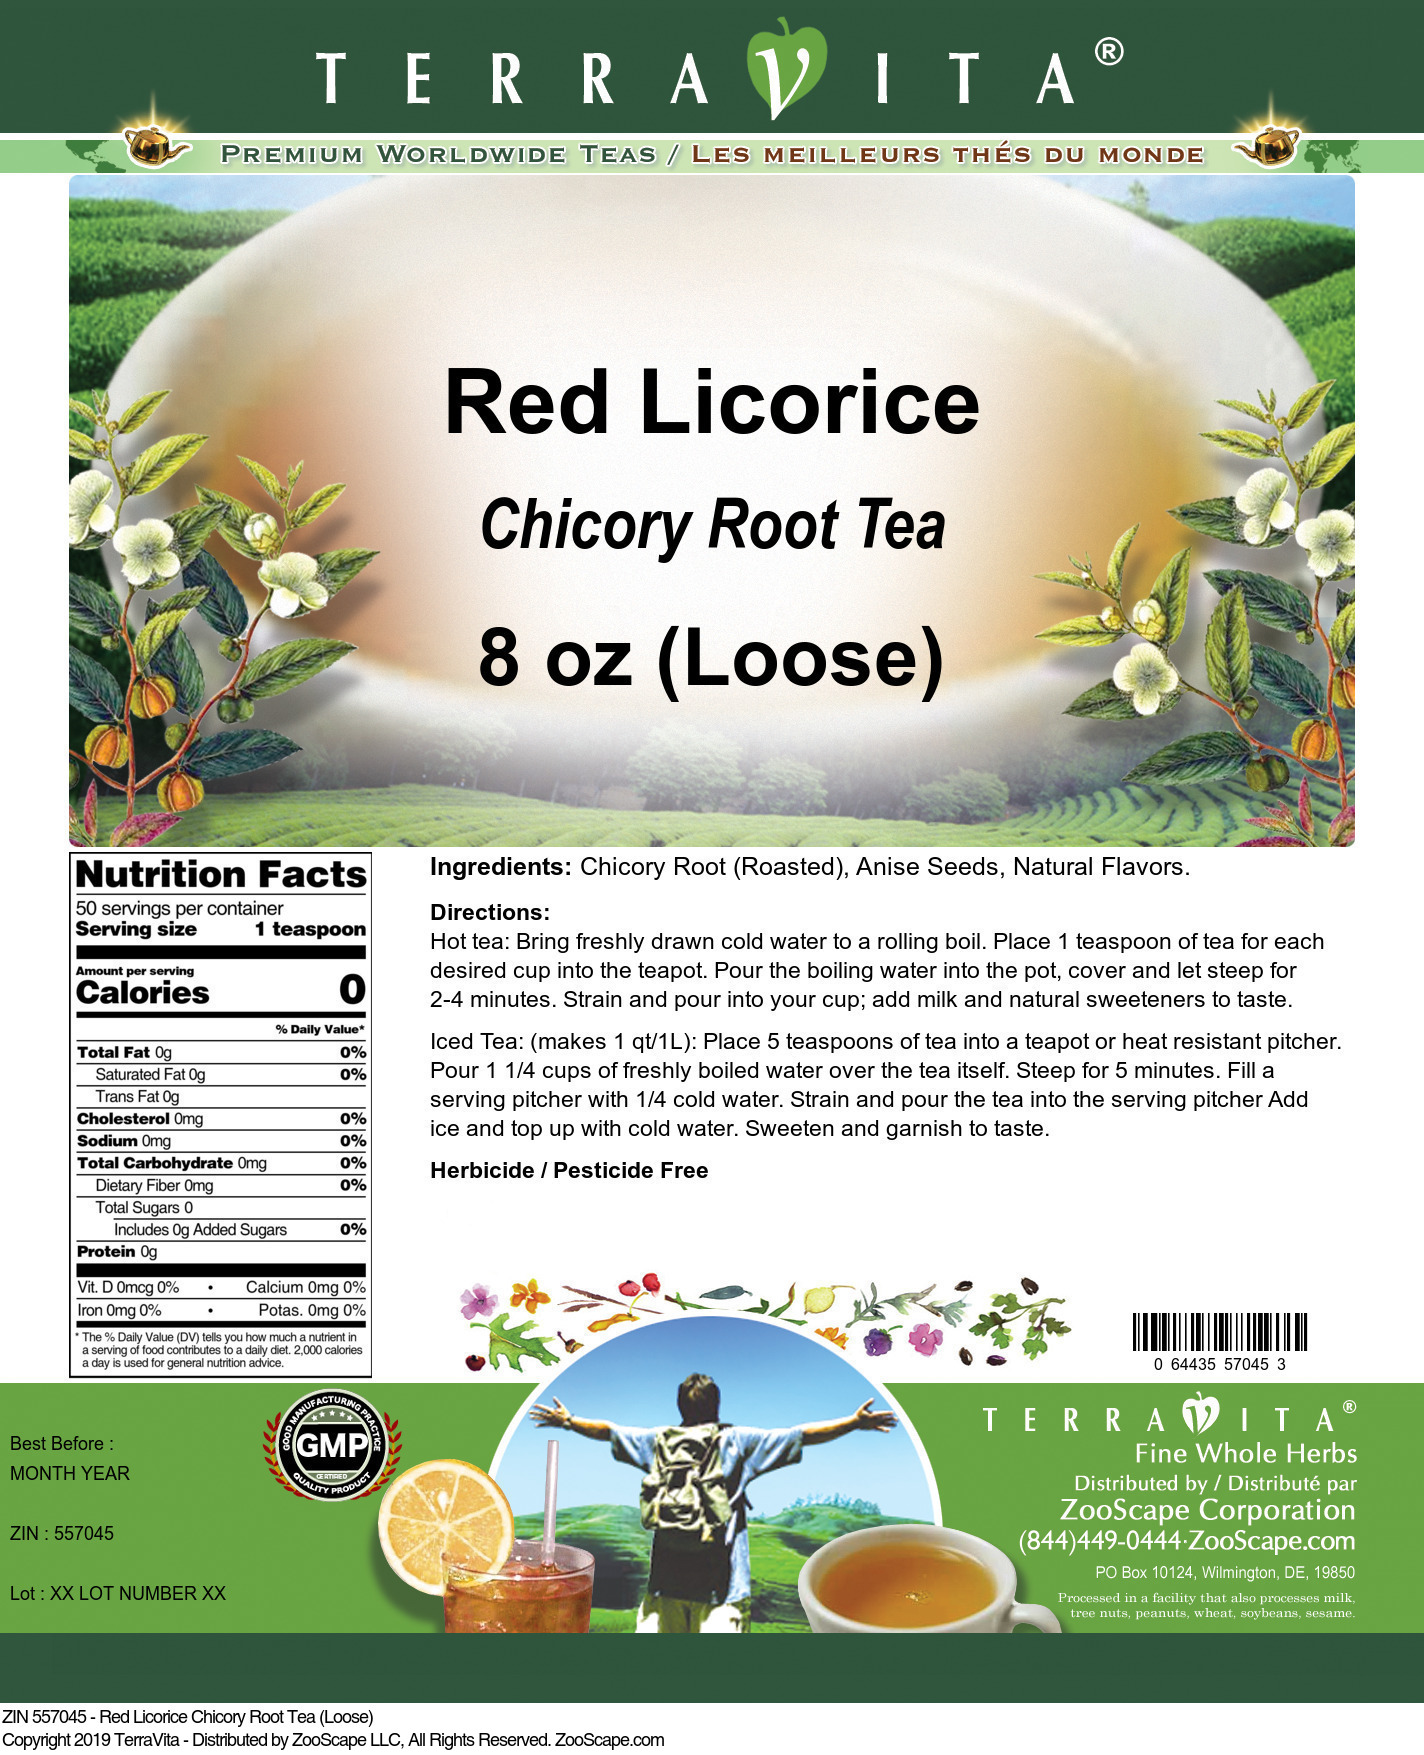 Red Licorice Chicory Root Tea (Loose)